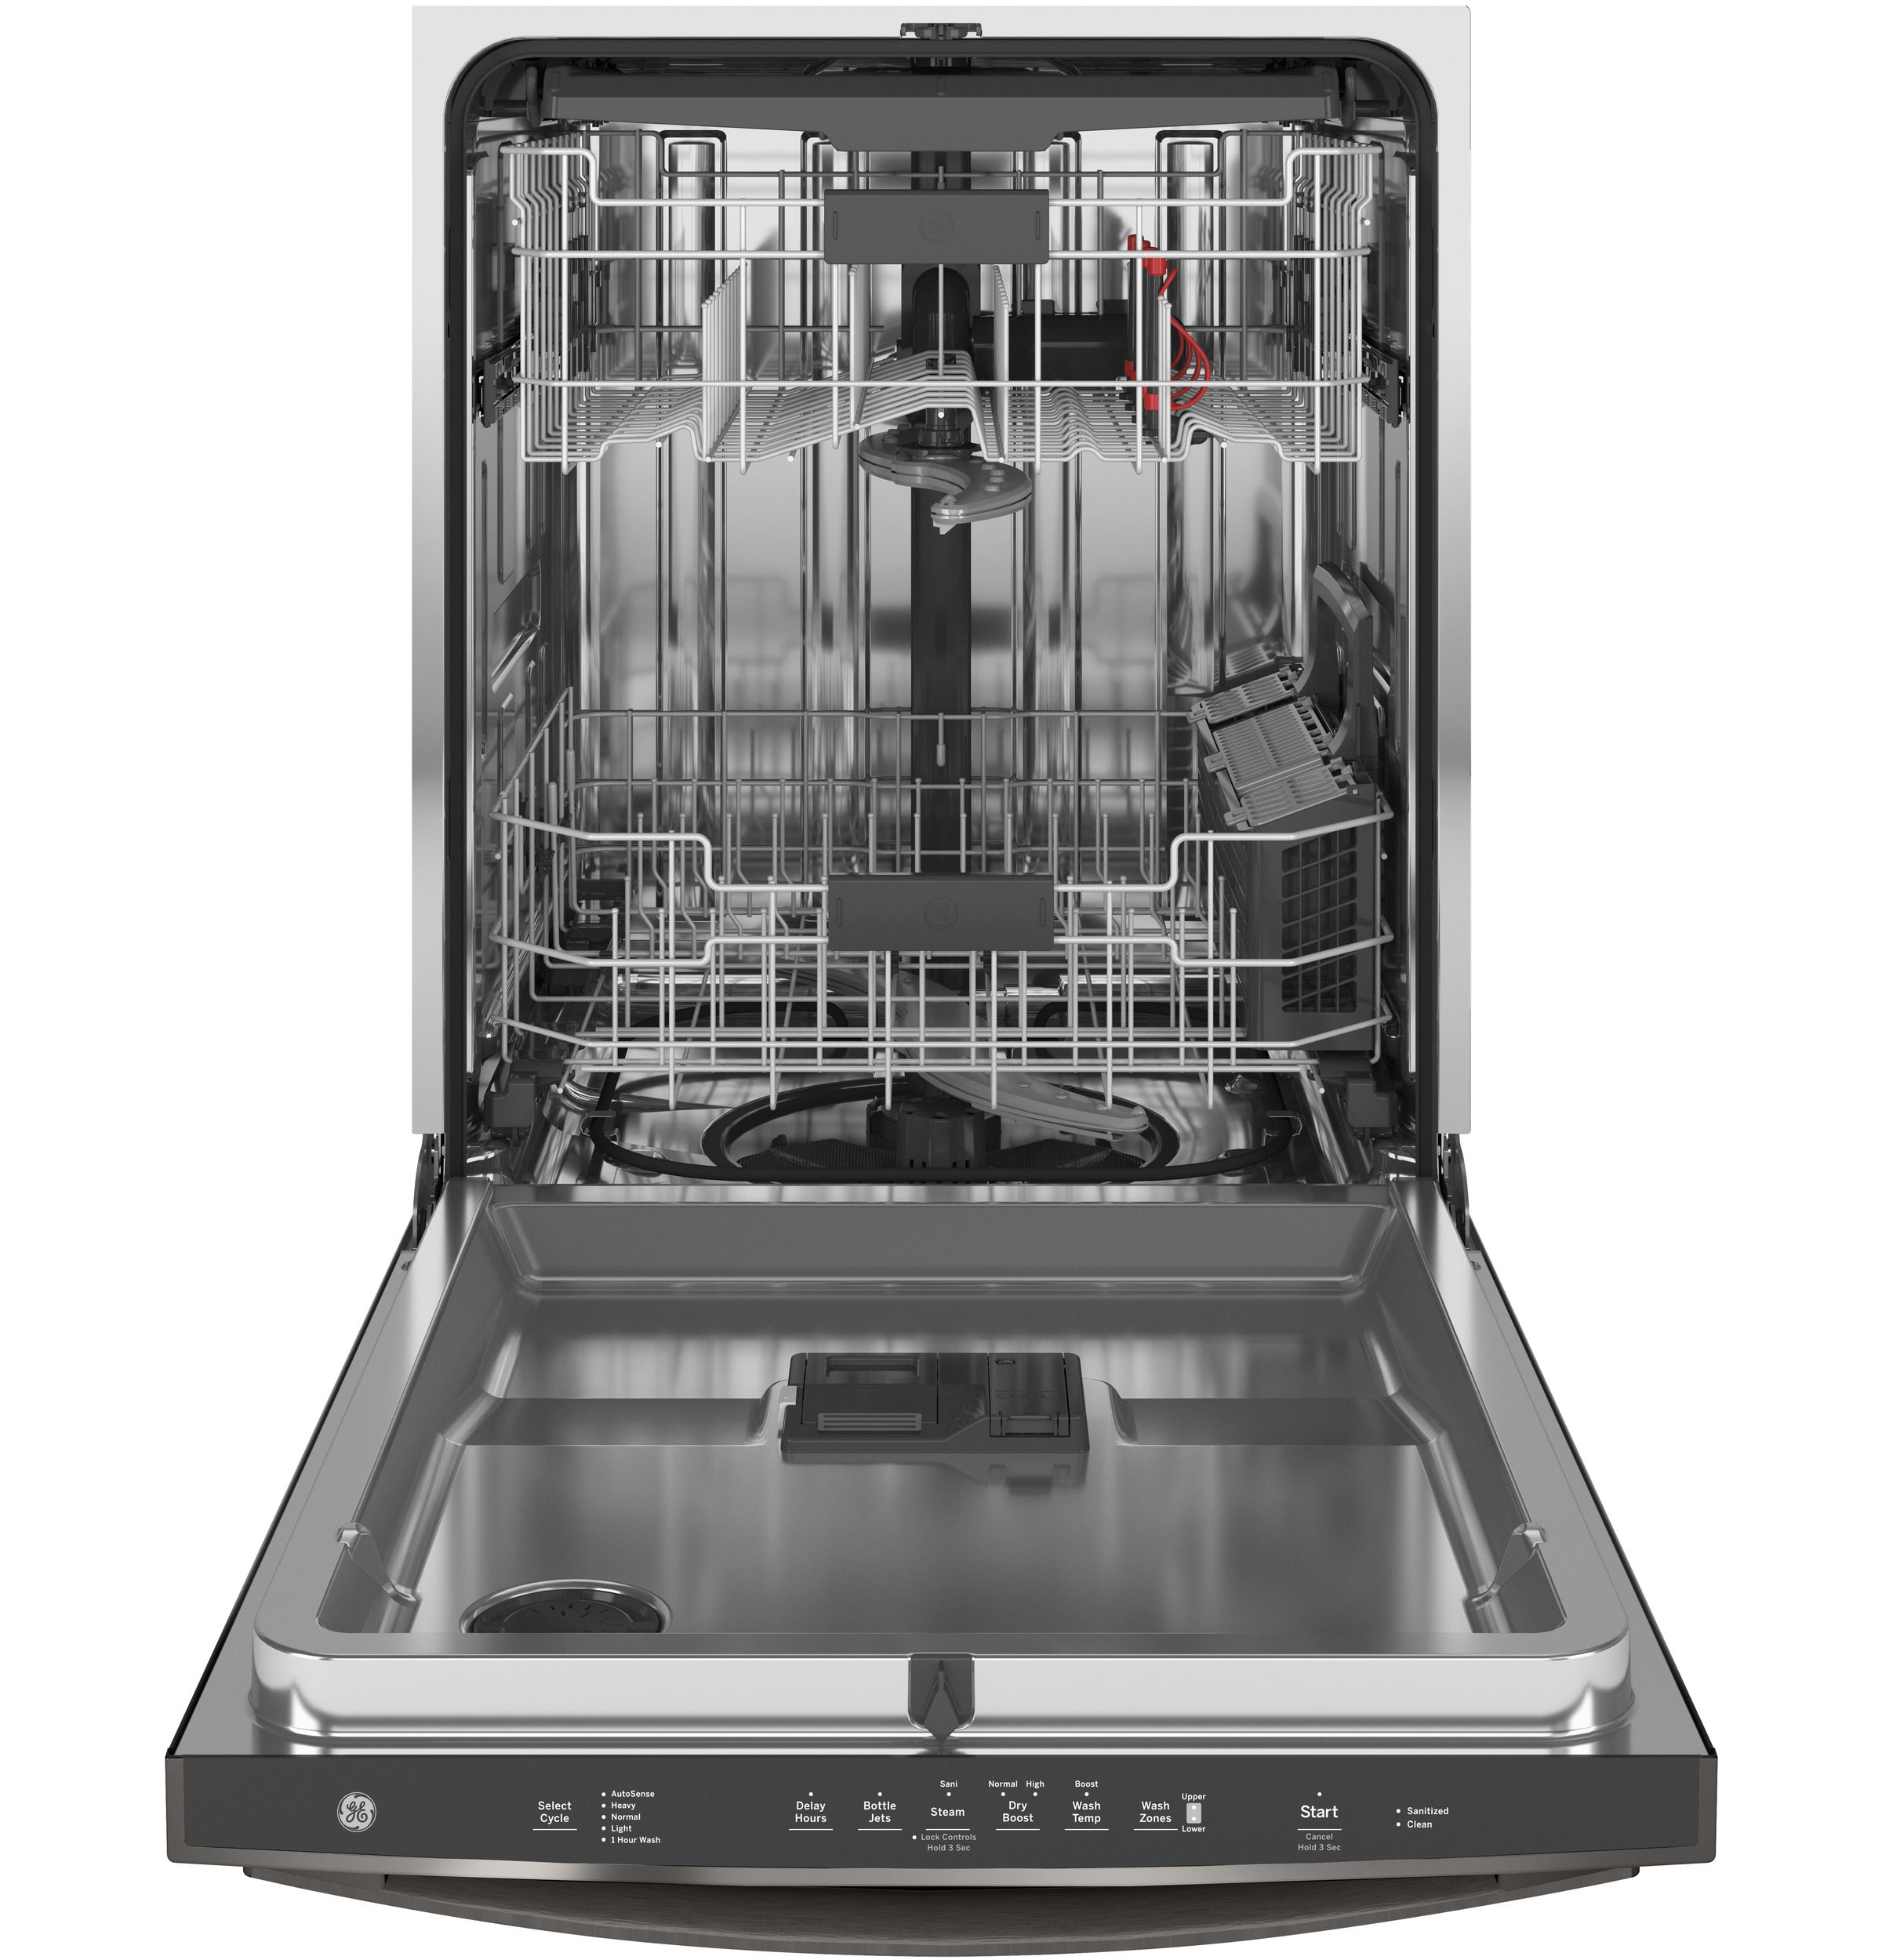 Model: GDT665SBNTS | GE GE® Top Control with Stainless Steel Interior Dishwasher with Sanitize Cycle & Dry Boost with Fan Assist